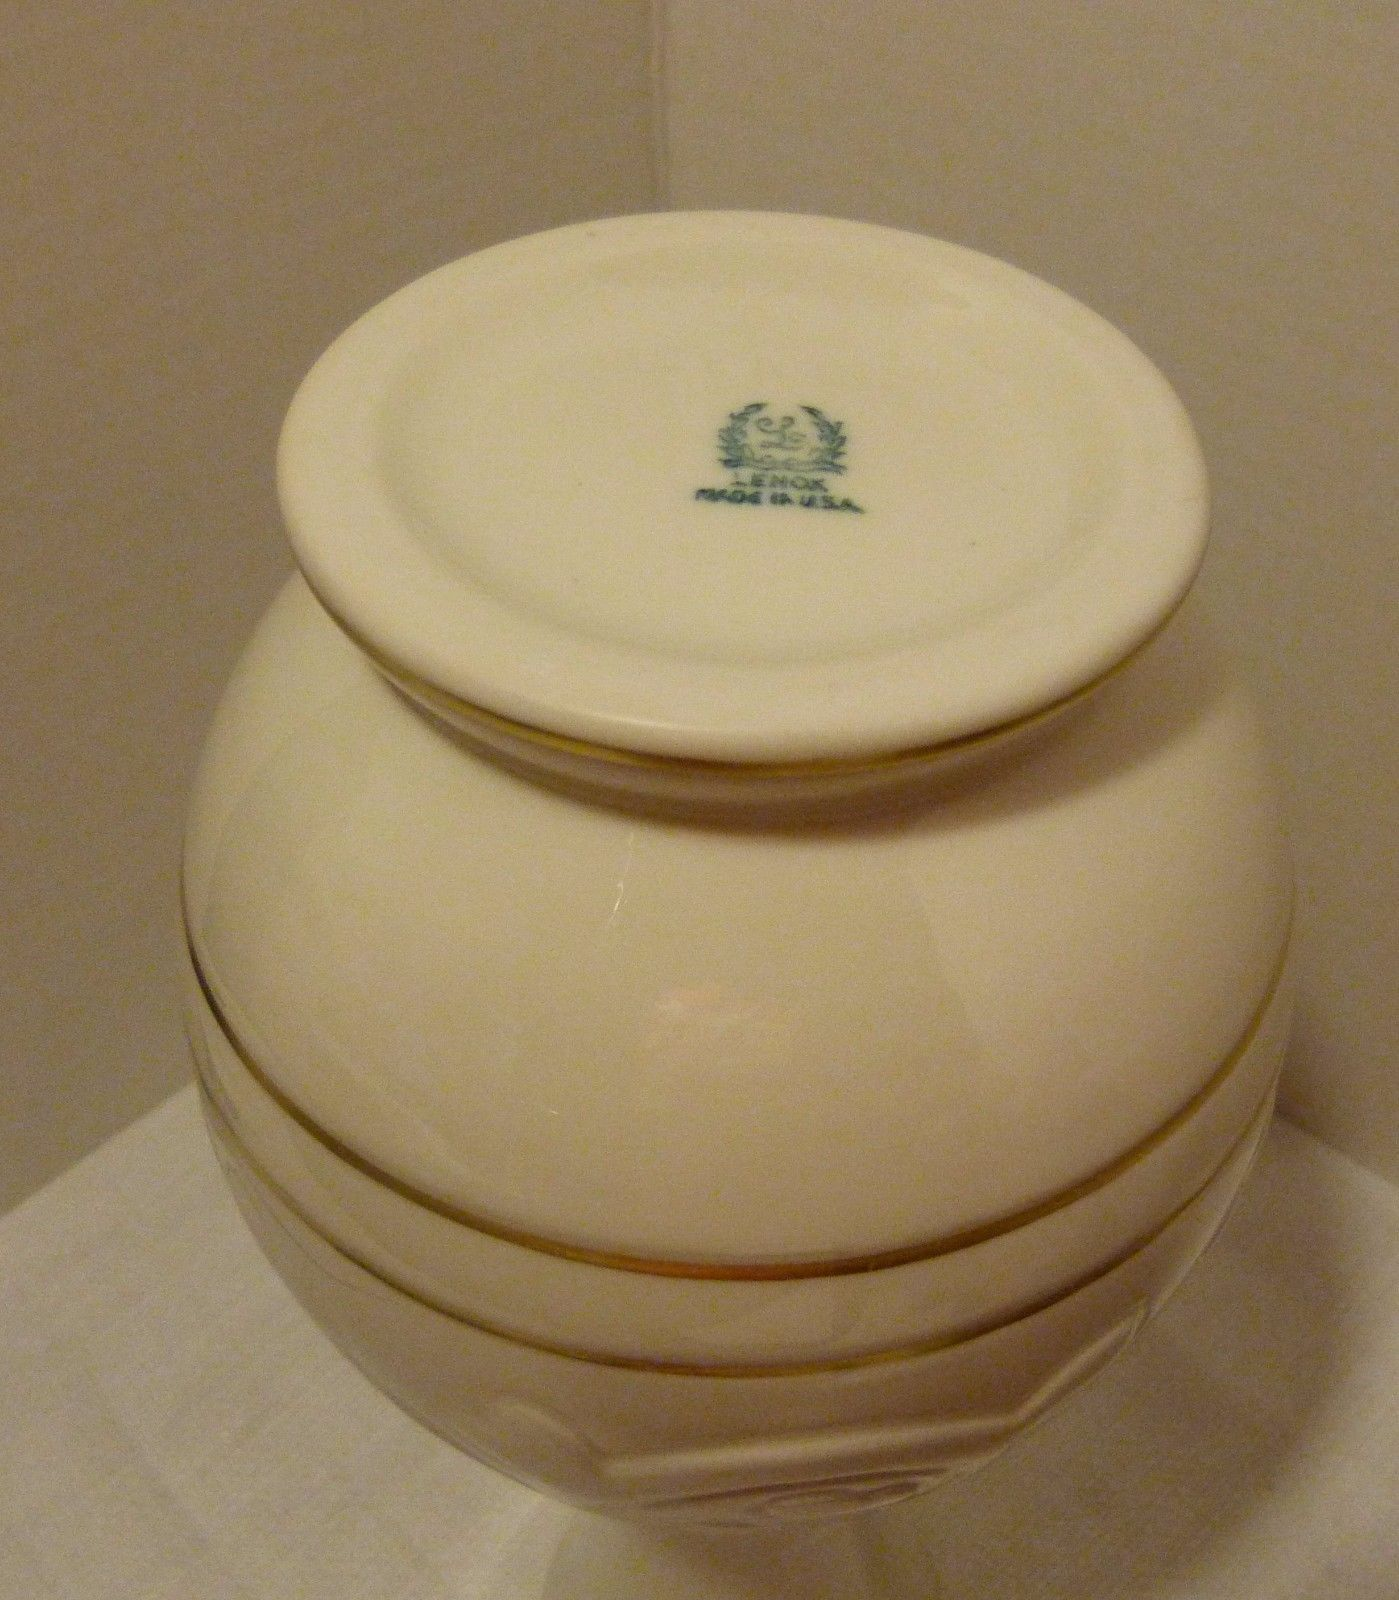 Lenox USA Rare Ivory and Gold Trim Vase Pattern 2078 Blue/Green Mark 1931-1953